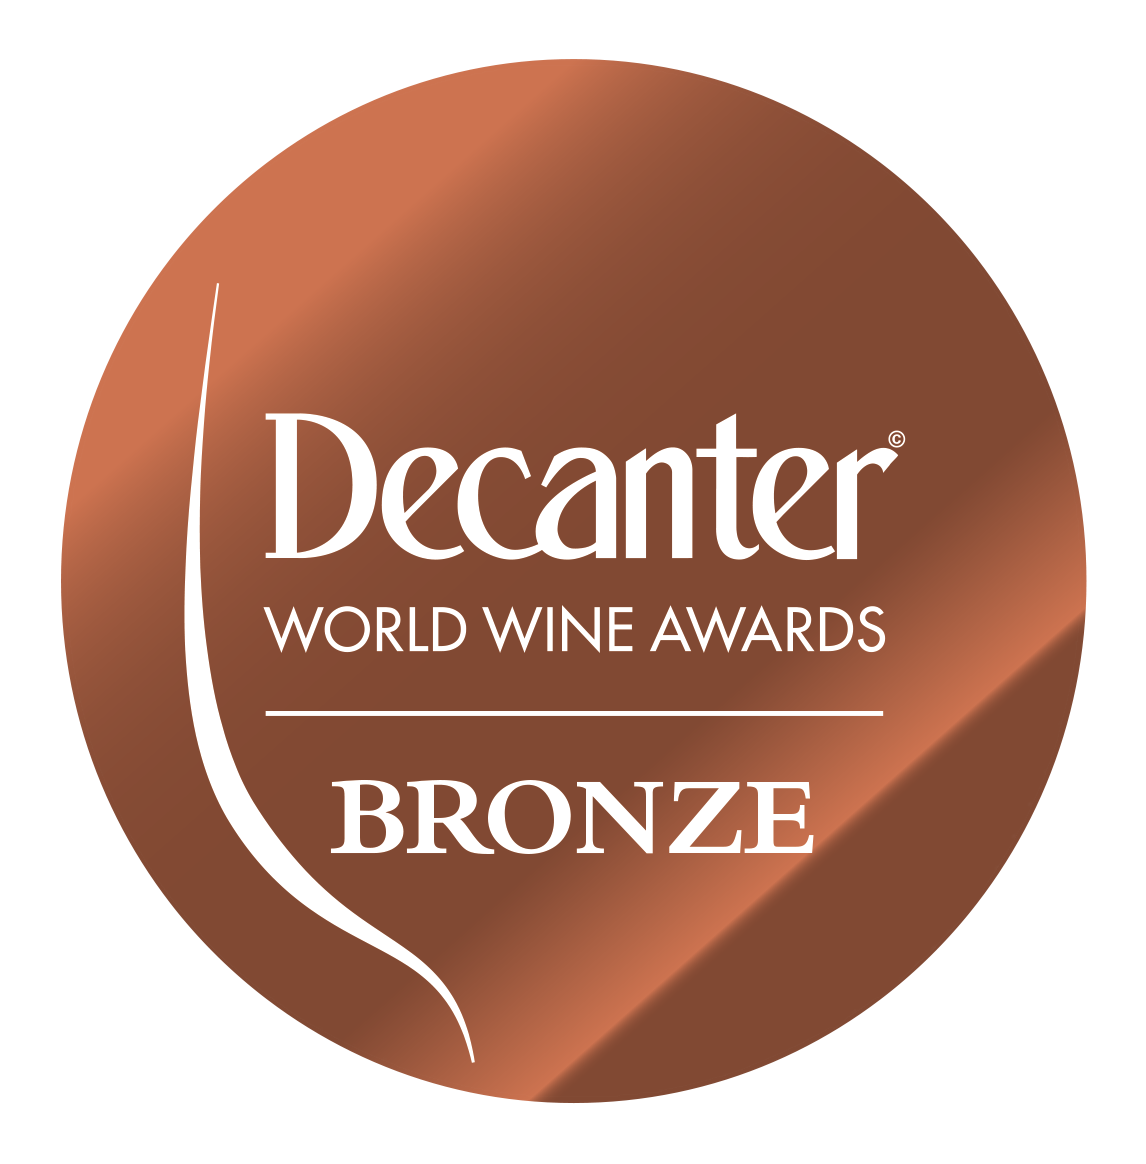 2012 vintage, winner of the Bronze Medal at the 2019 Decanter World Wine Awards, London (United Kingdom).